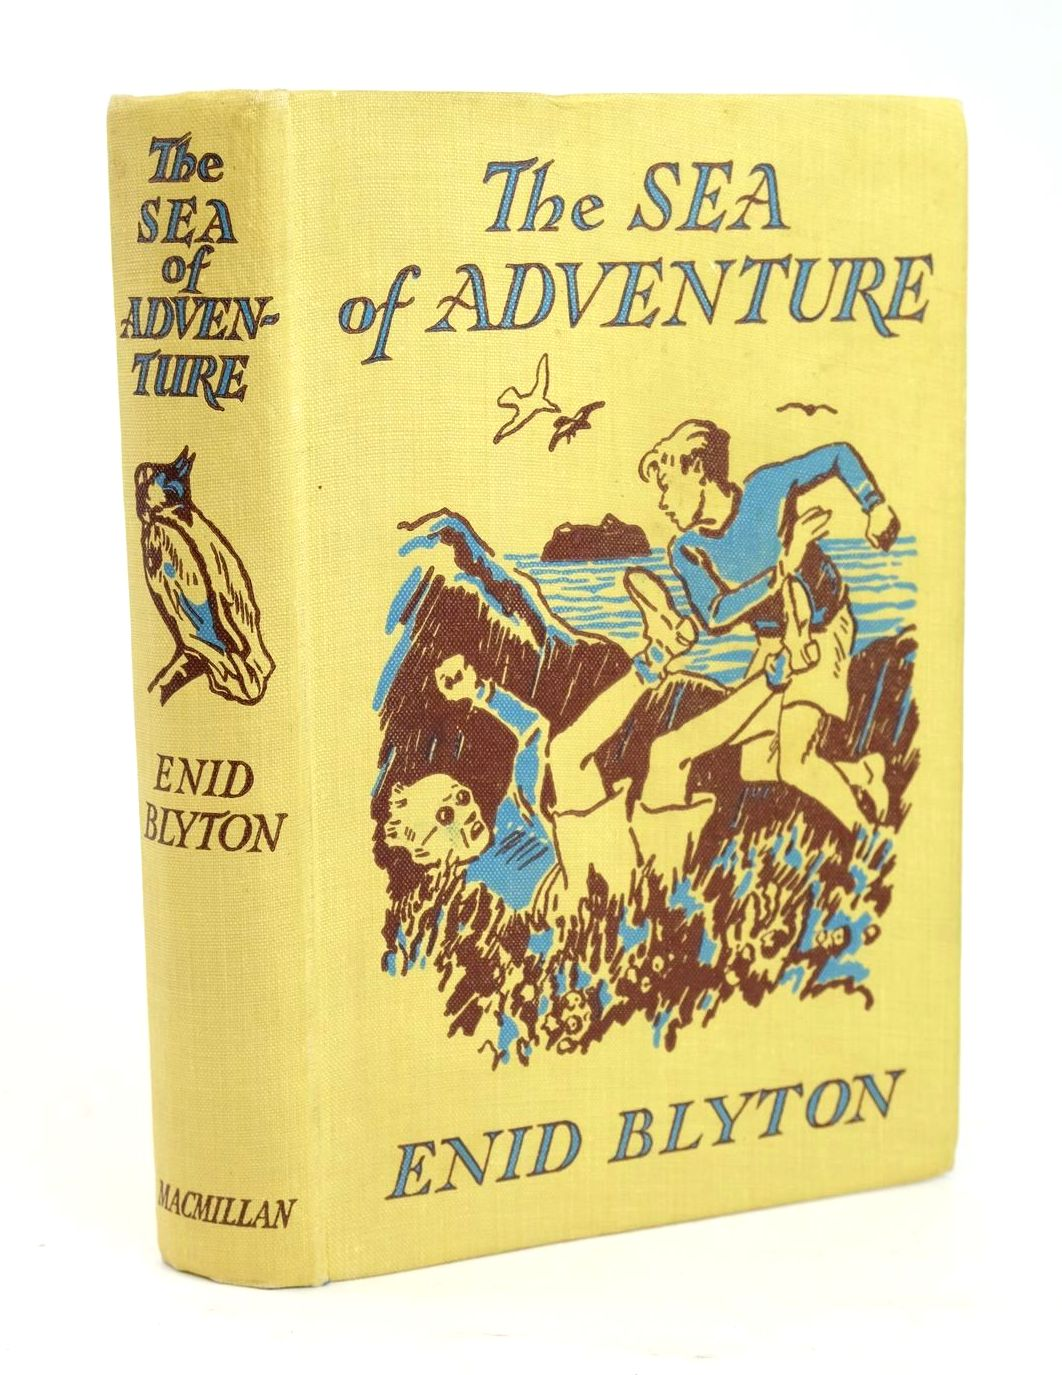 Photo of THE SEA OF ADVENTURE written by Blyton, Enid illustrated by Tresilian, Stuart published by Macmillan & Co. Ltd. (STOCK CODE: 1319435)  for sale by Stella & Rose's Books